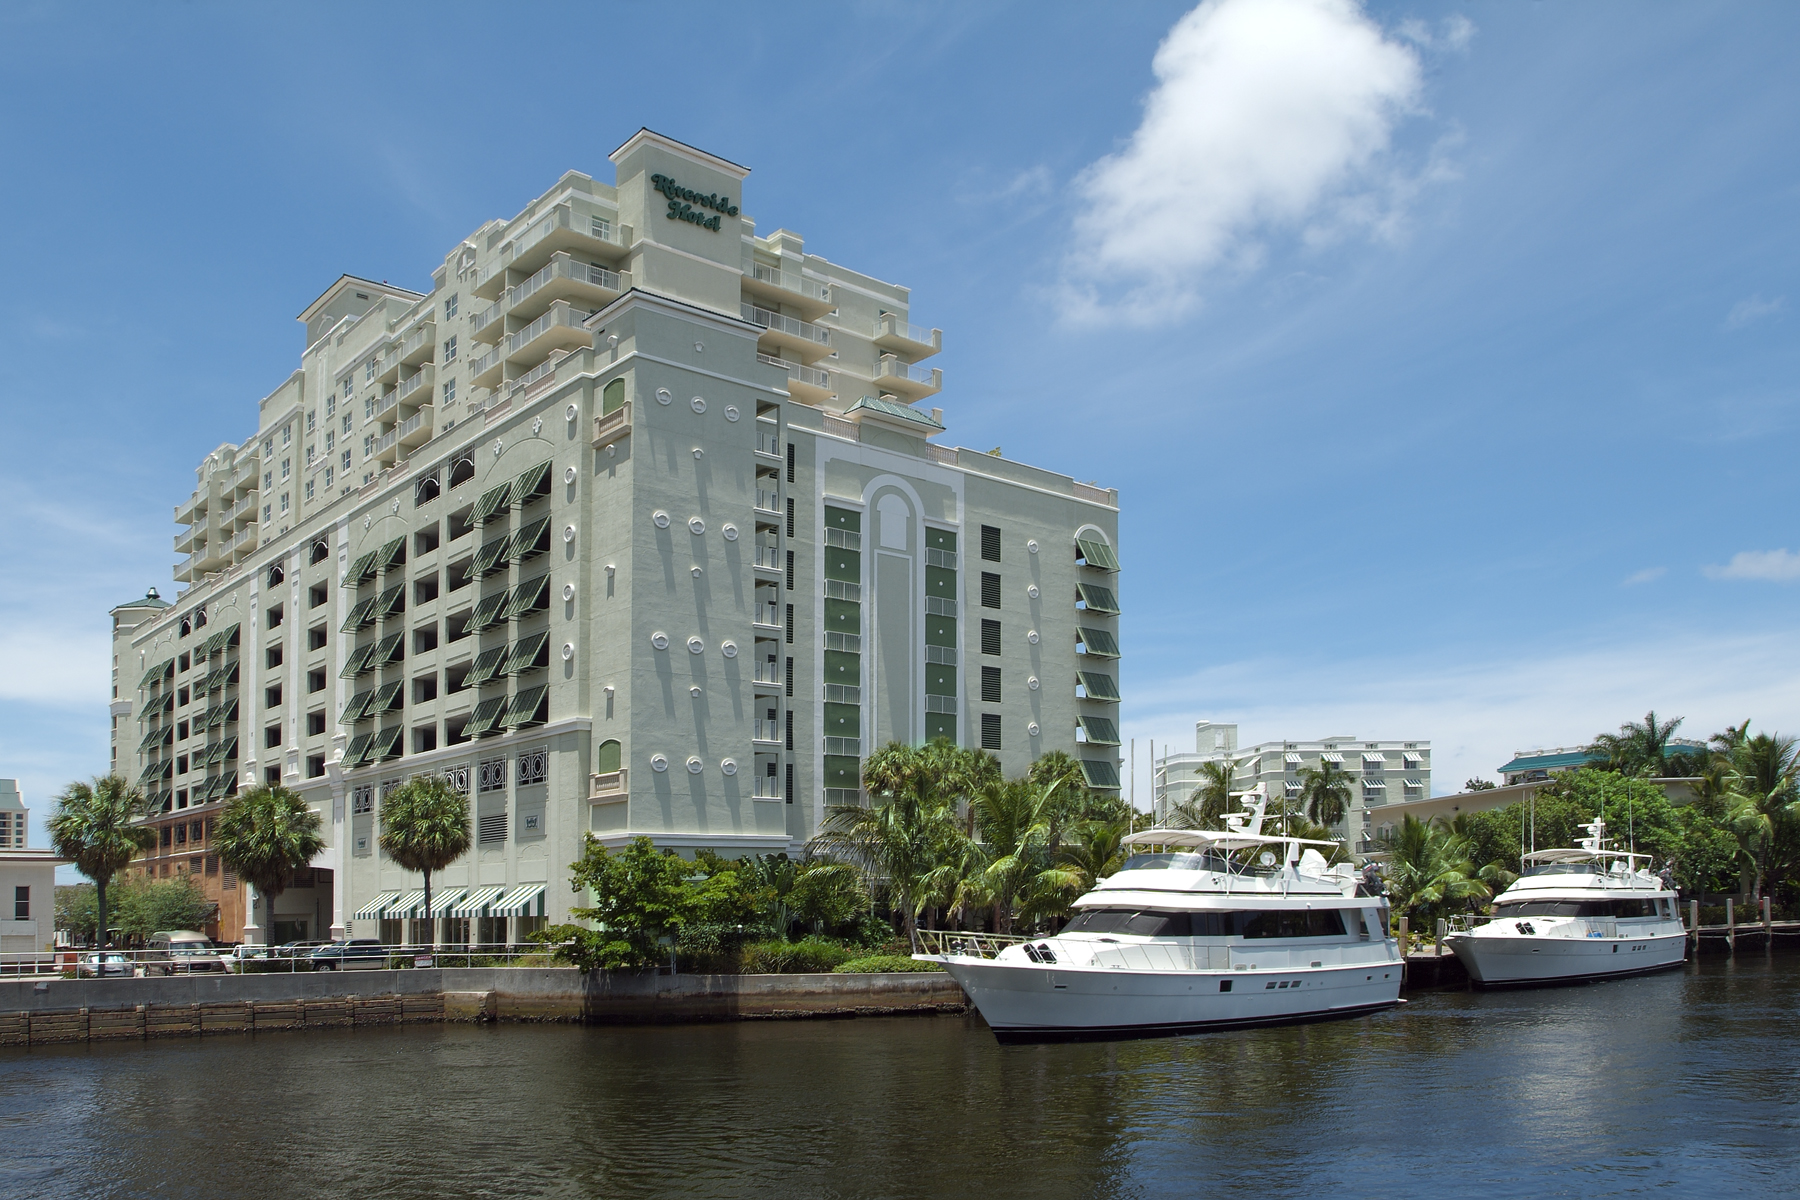 Riverside Hotel Fort Lauderdale Deals See Hotel Photos